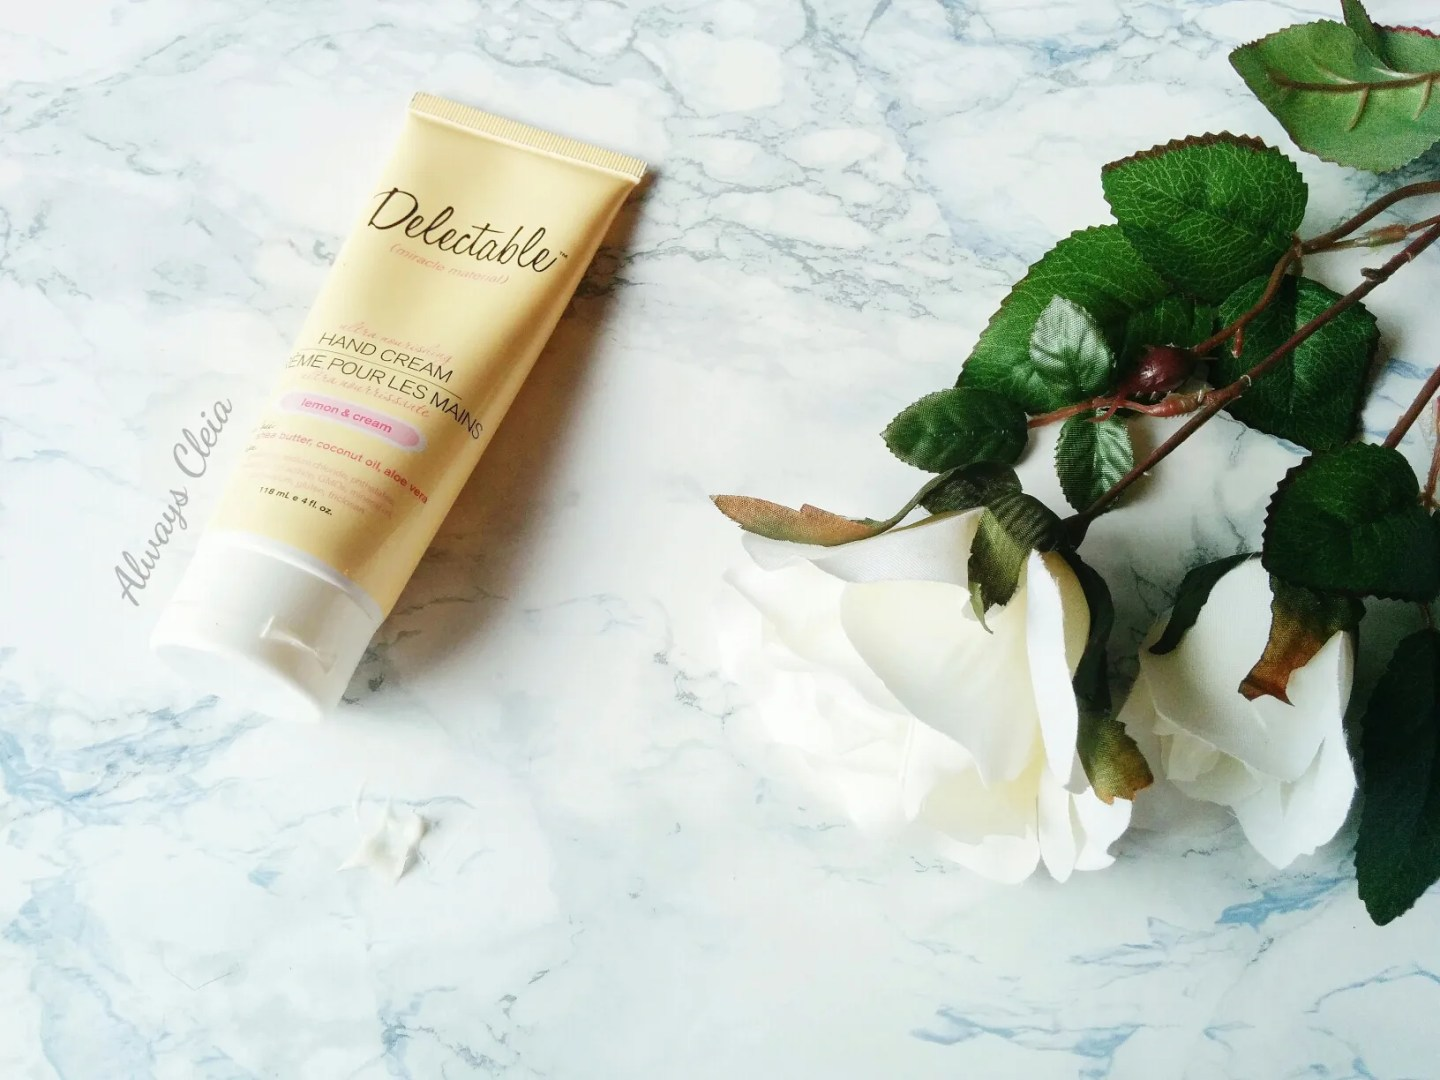 Hand Creams For Fall & Winter: Delectable Lemon Hand Cream